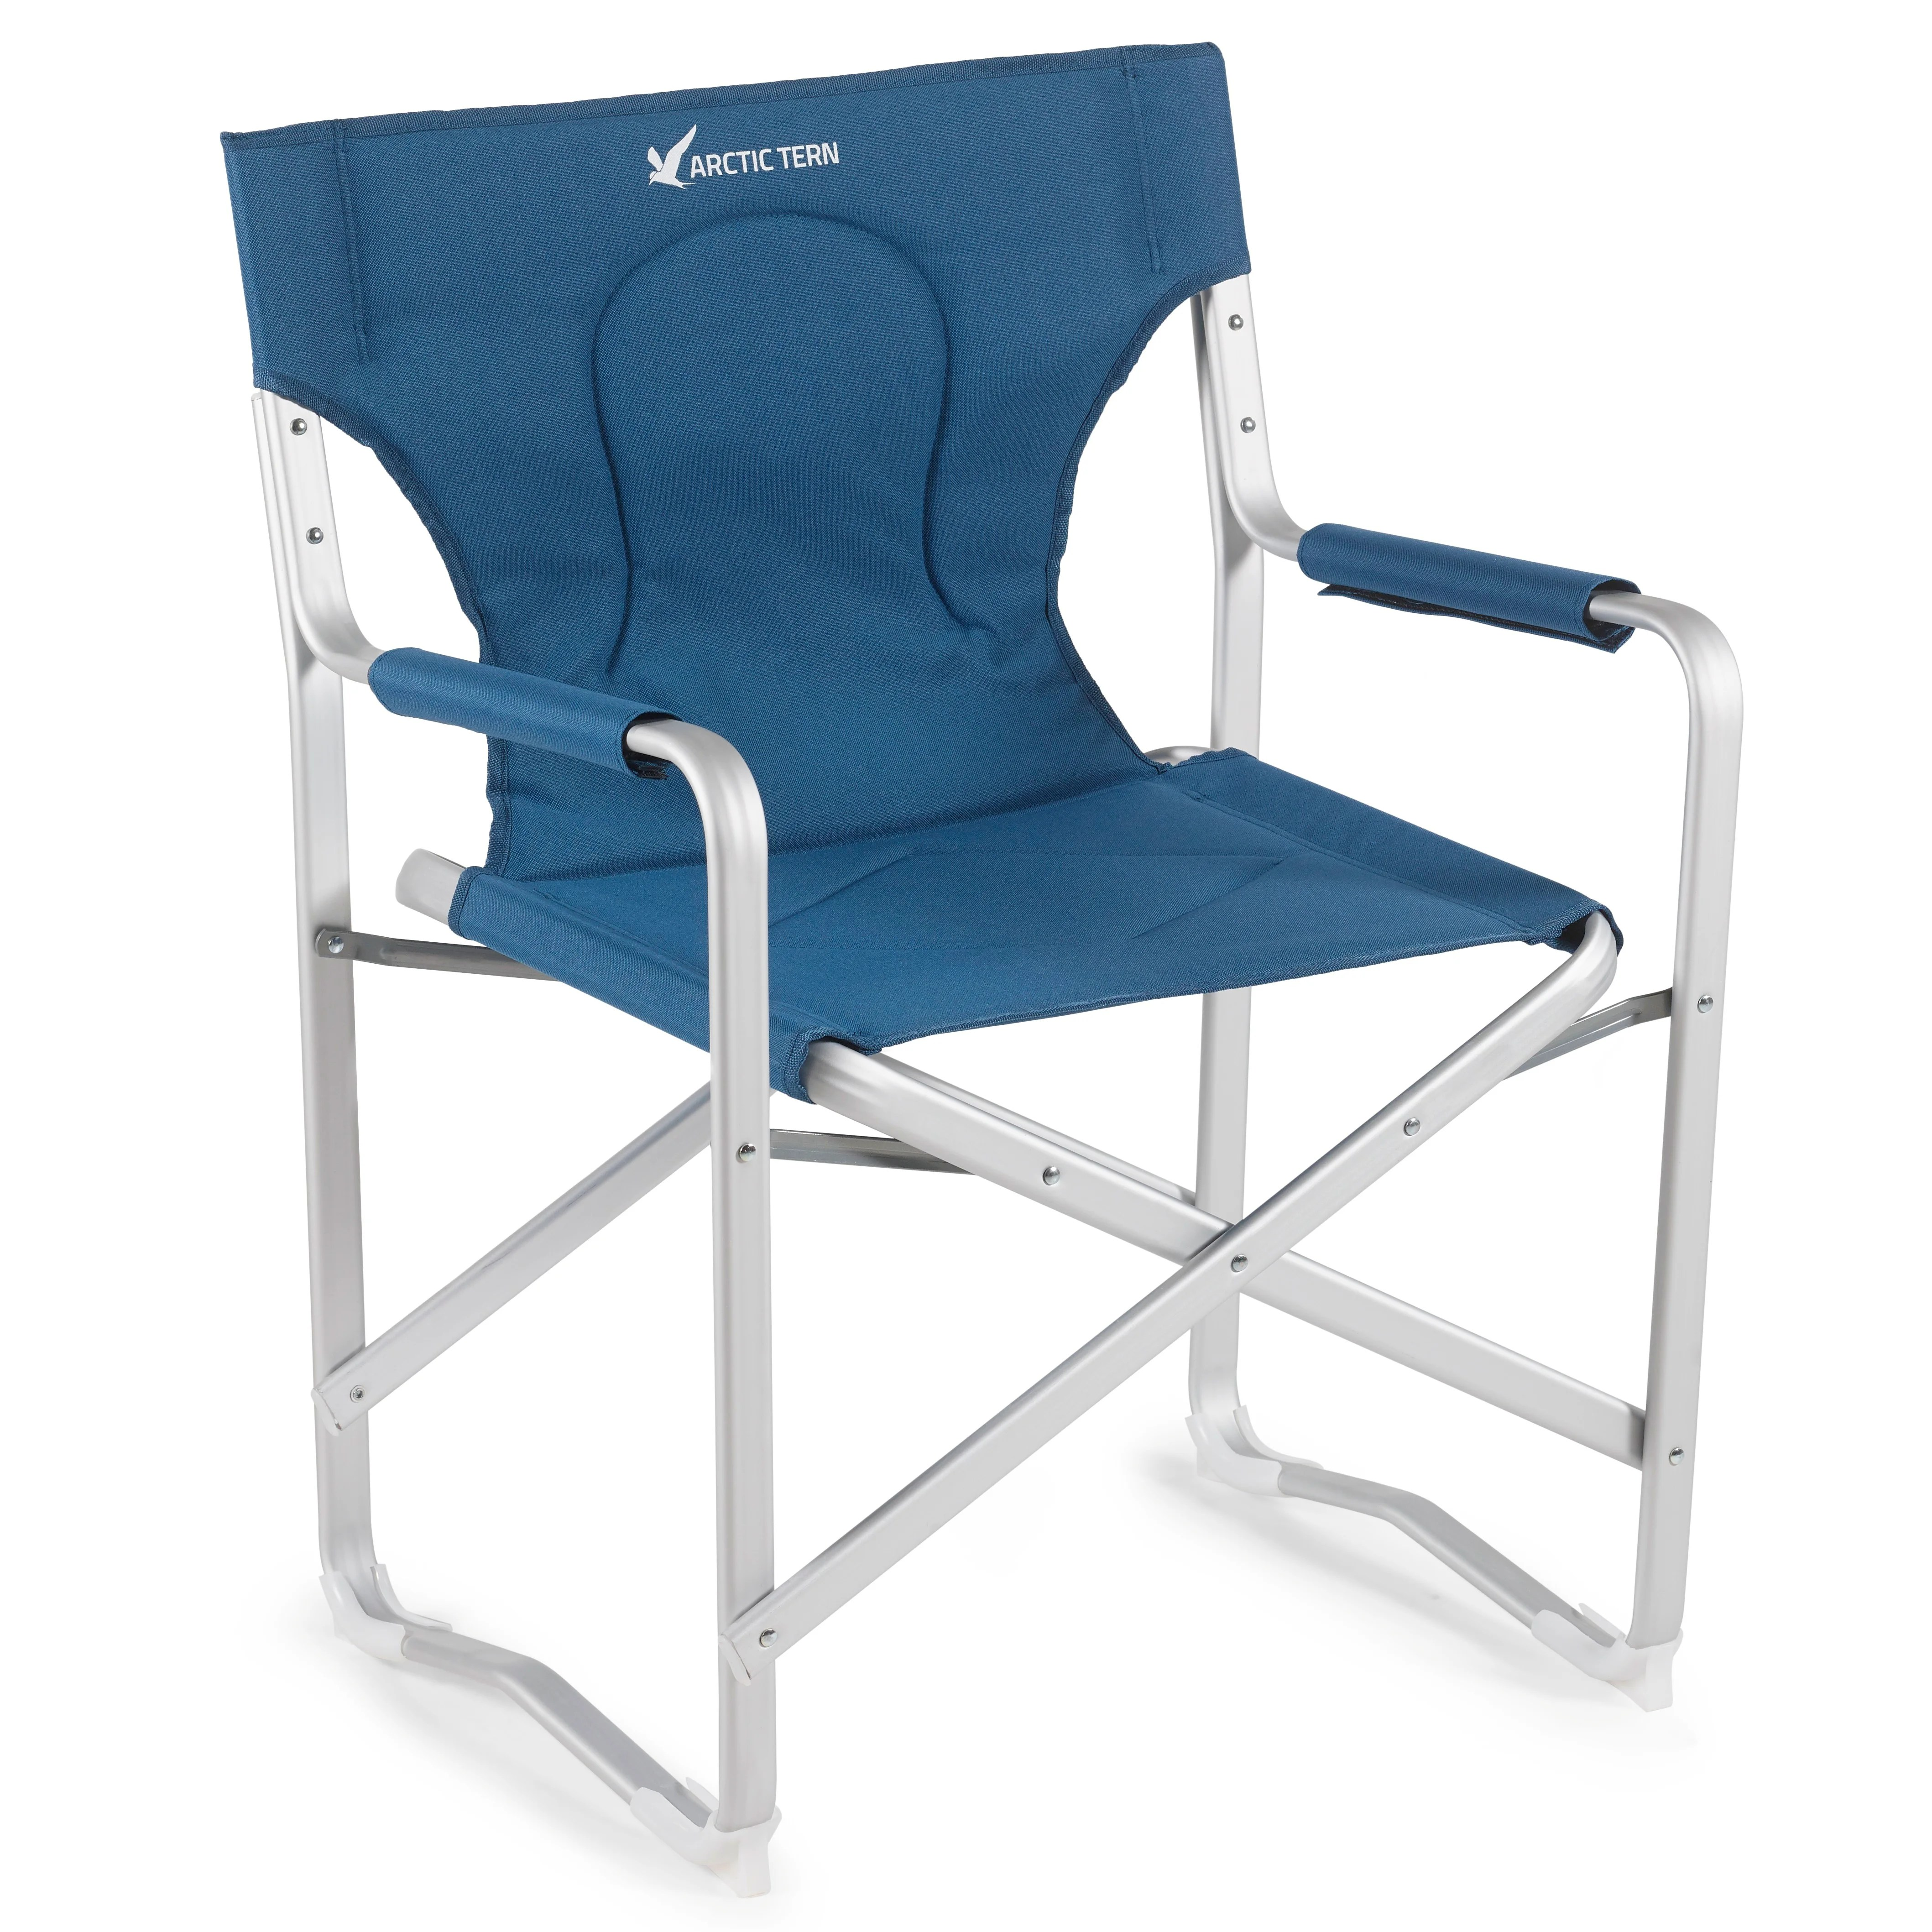 Deluxe Camping Chairs Buy Arctic Tern Deluxe Camping Chair From Outnorth